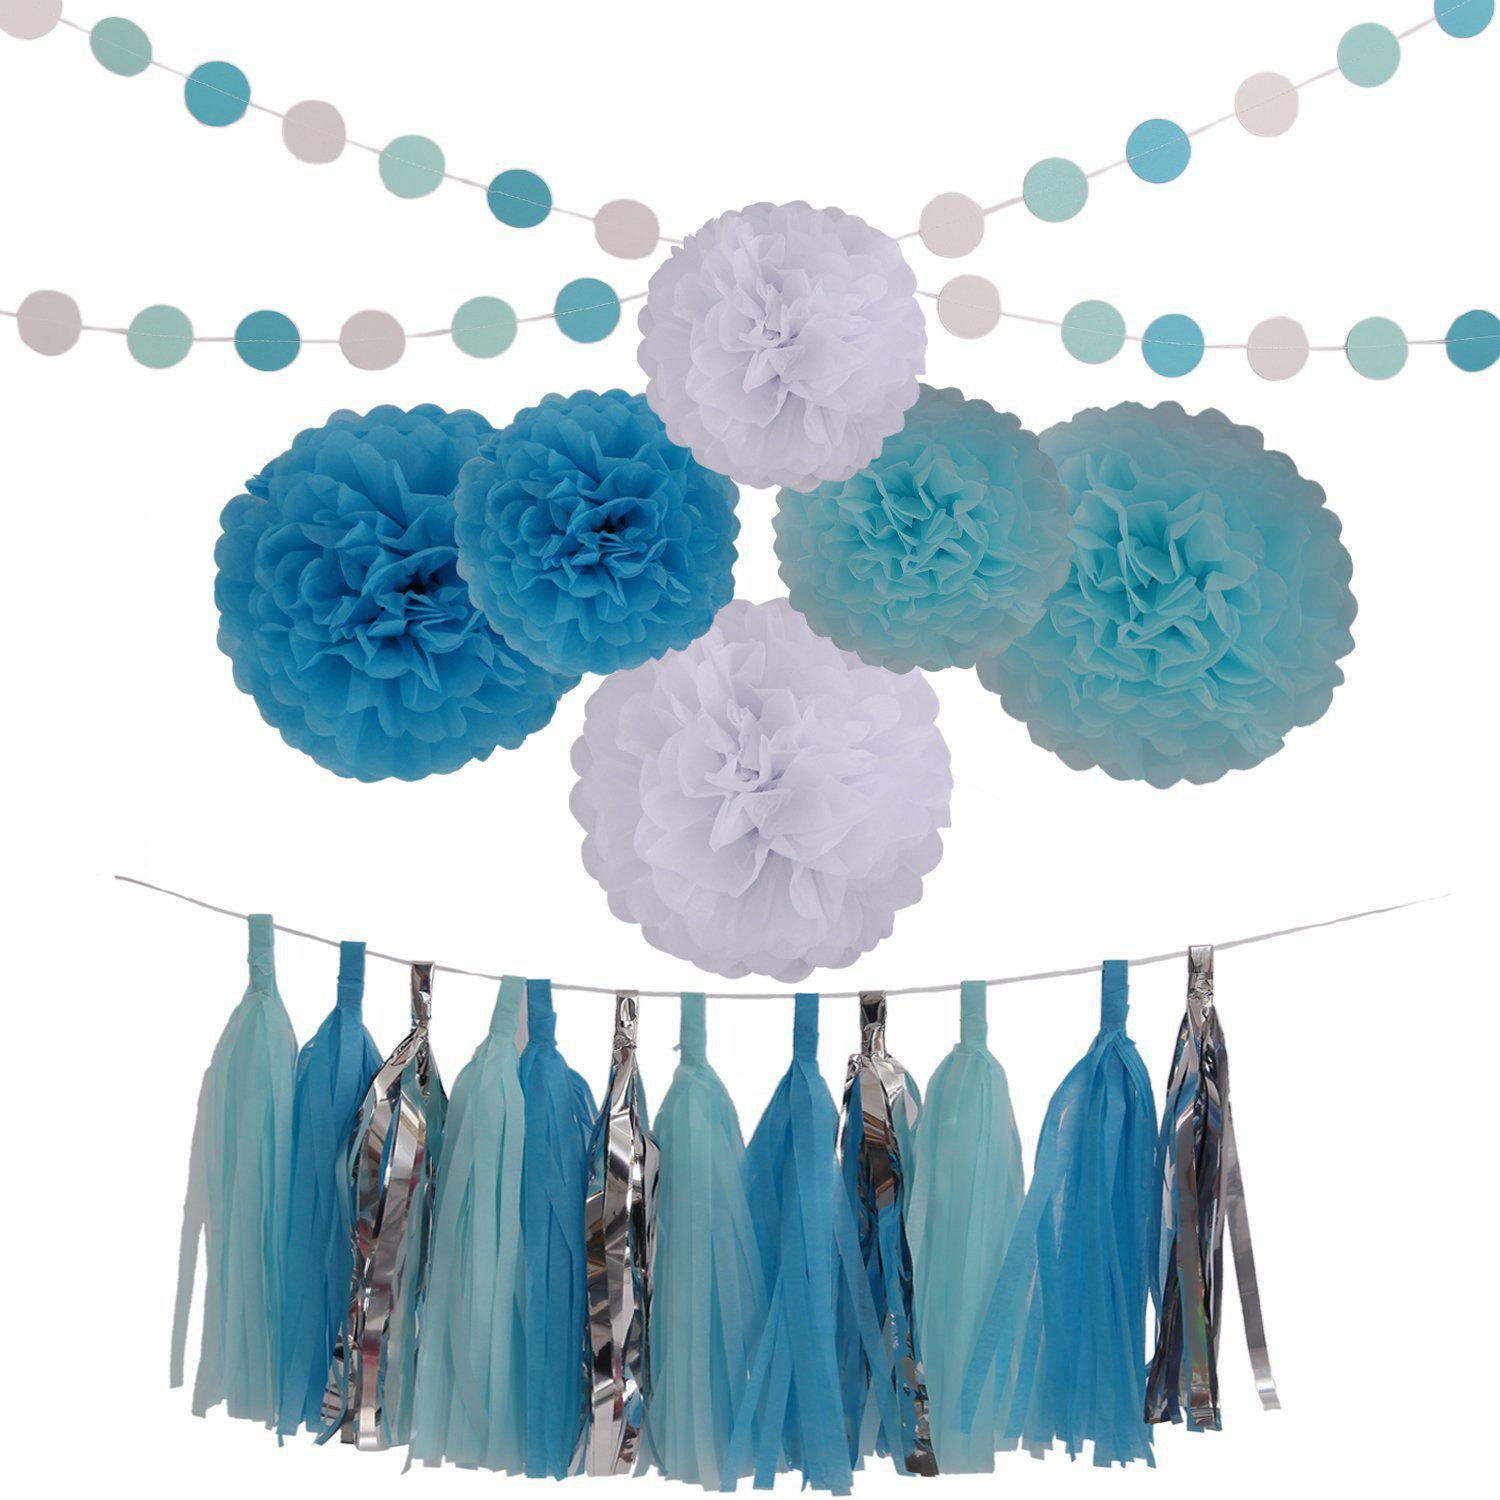 2019 Baby Blue White Lake Blue Tissue Paper Pom Poms